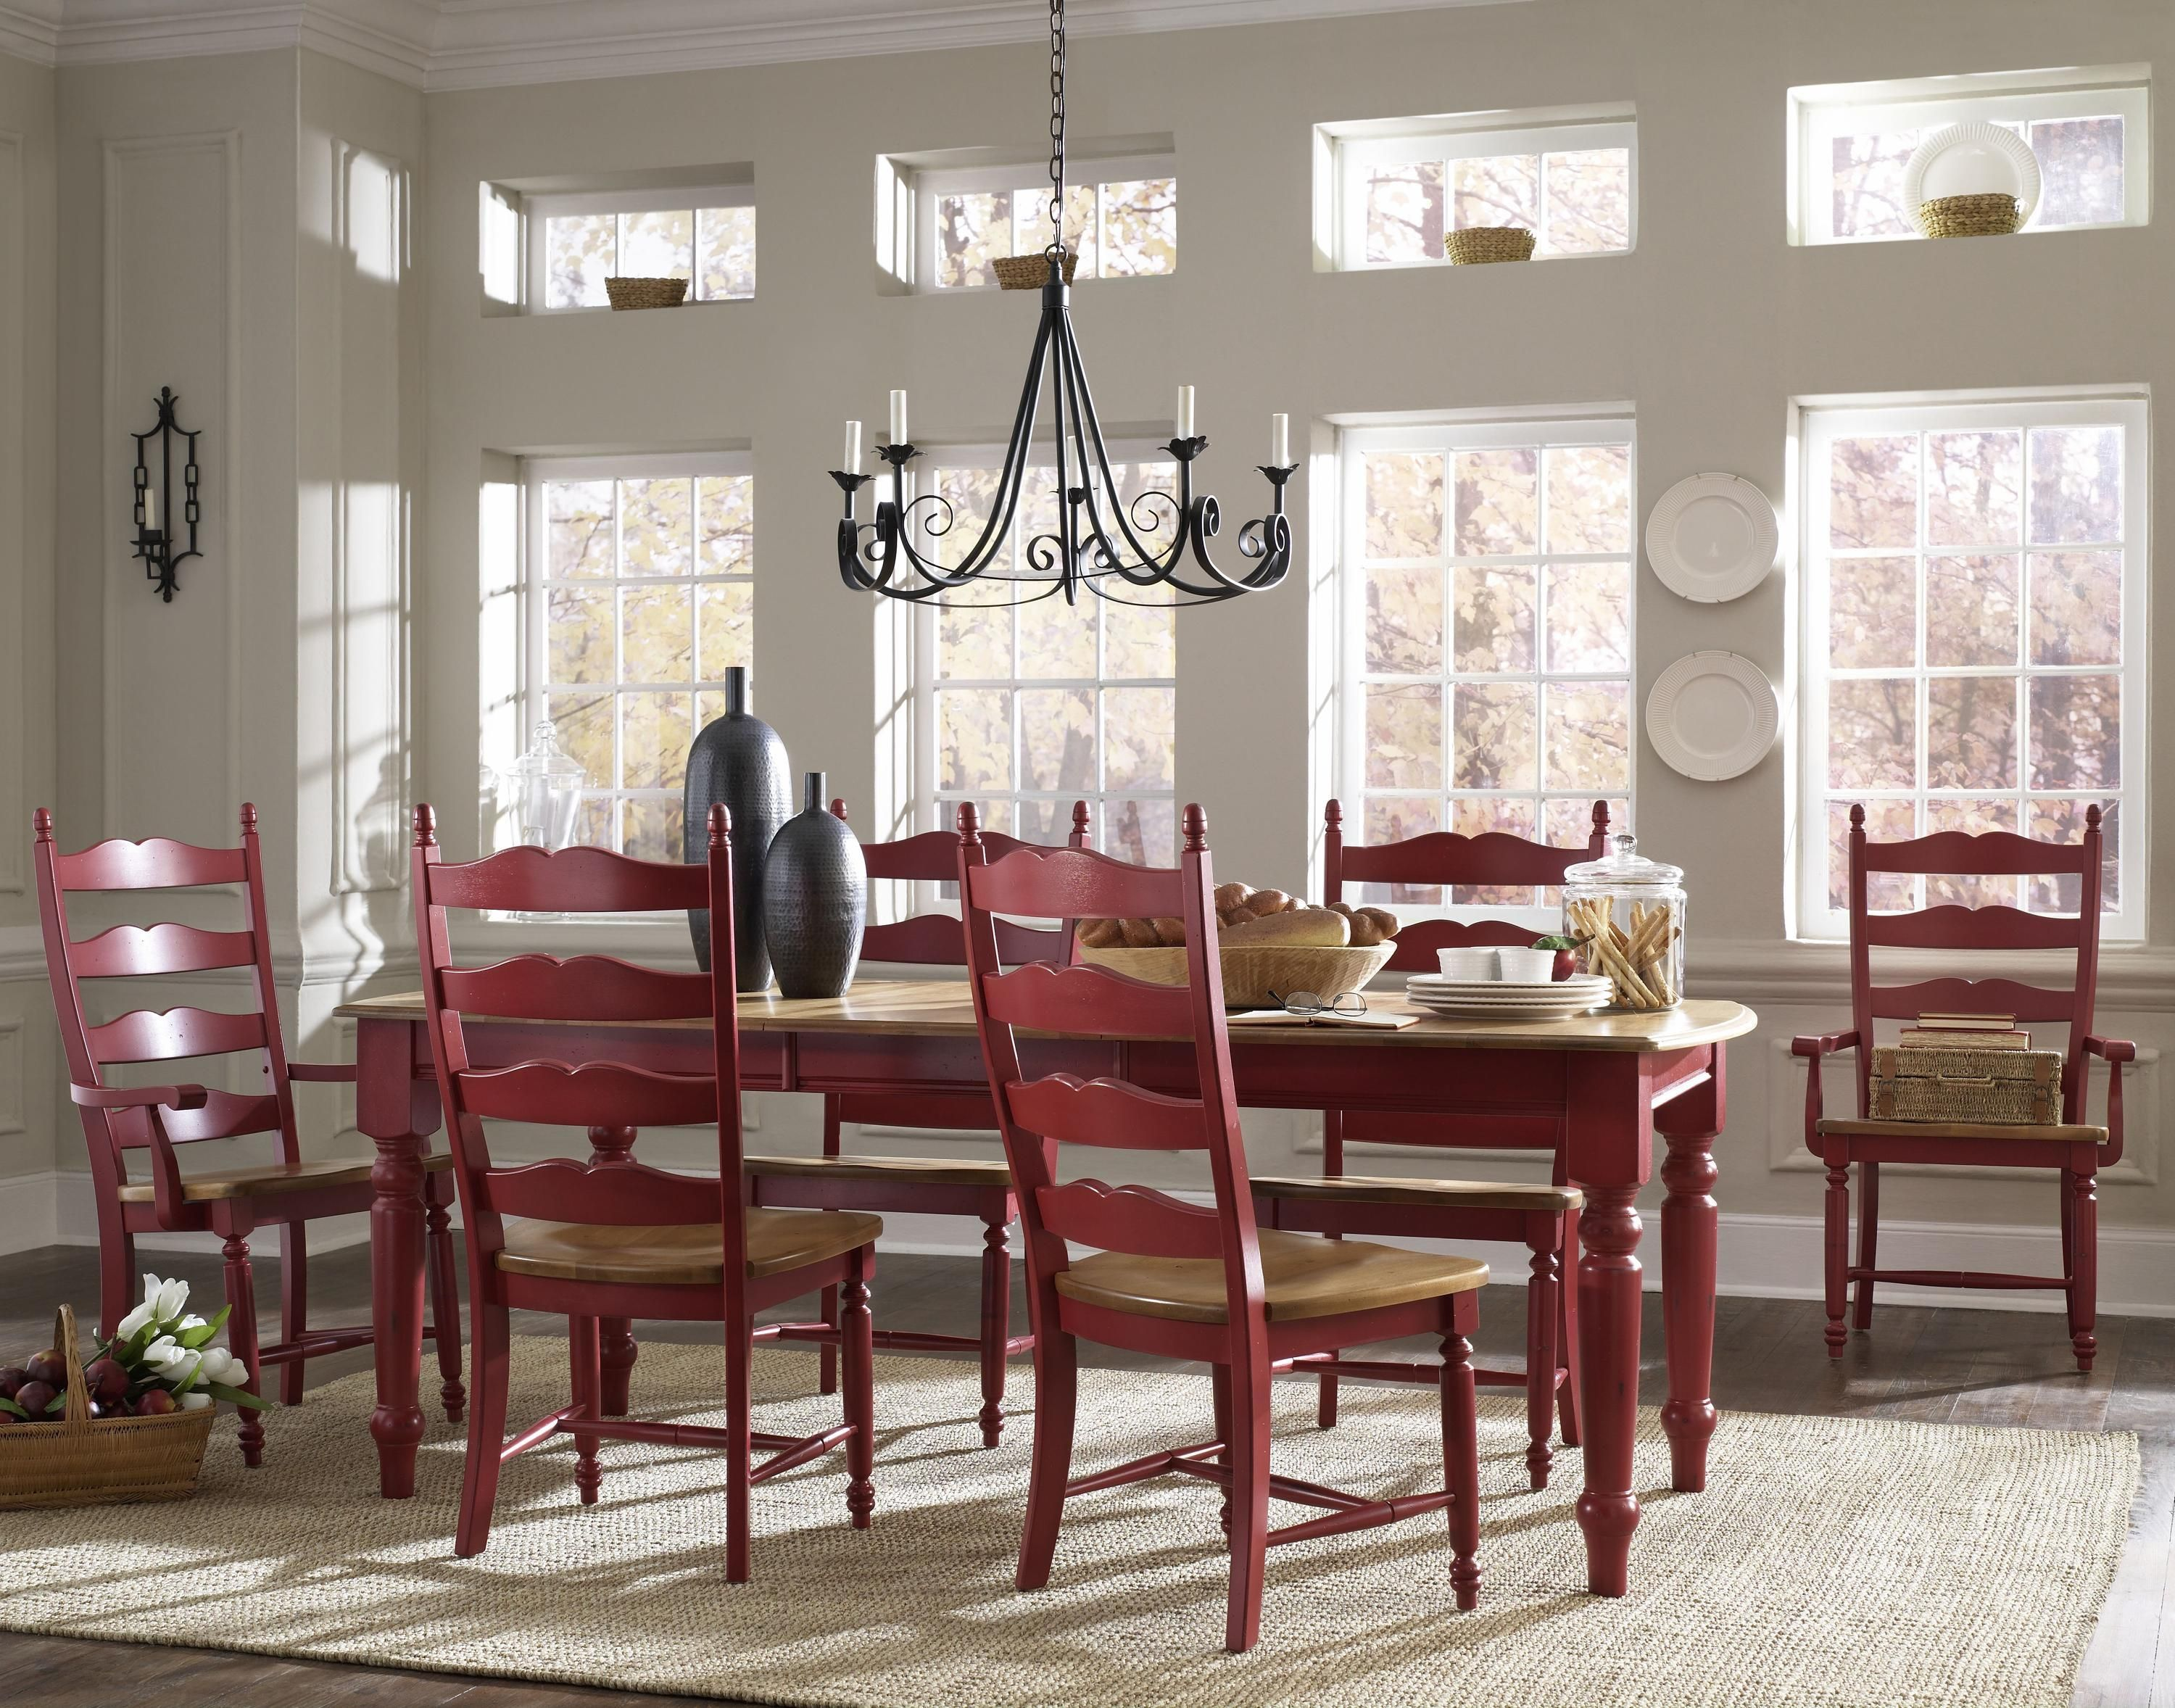 Customizable Country Estate Dining By Canadel Shown In Red A Country Chic Collection Mobilier De Salon Service De Table Belles Salles A Manger